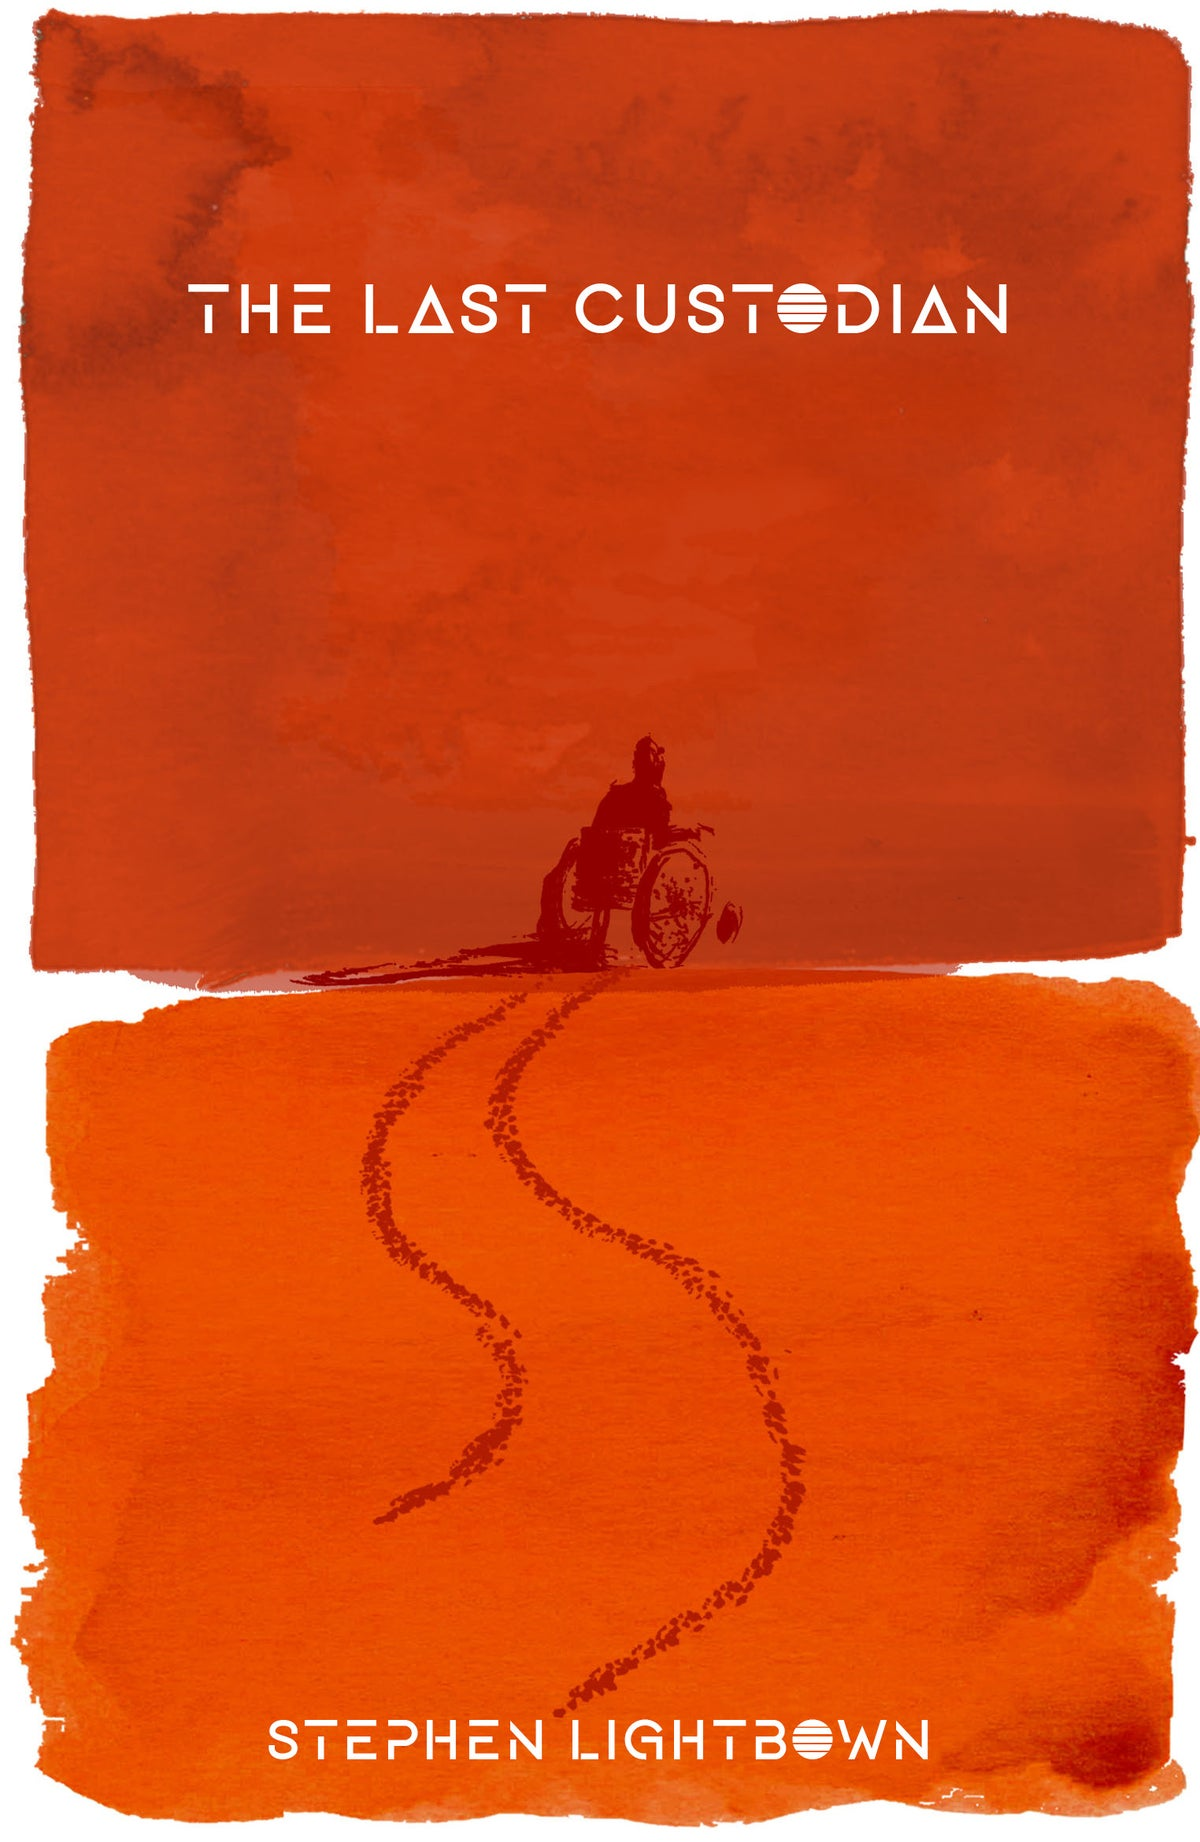 Image of The Last Custodian by Stephen Lightbown